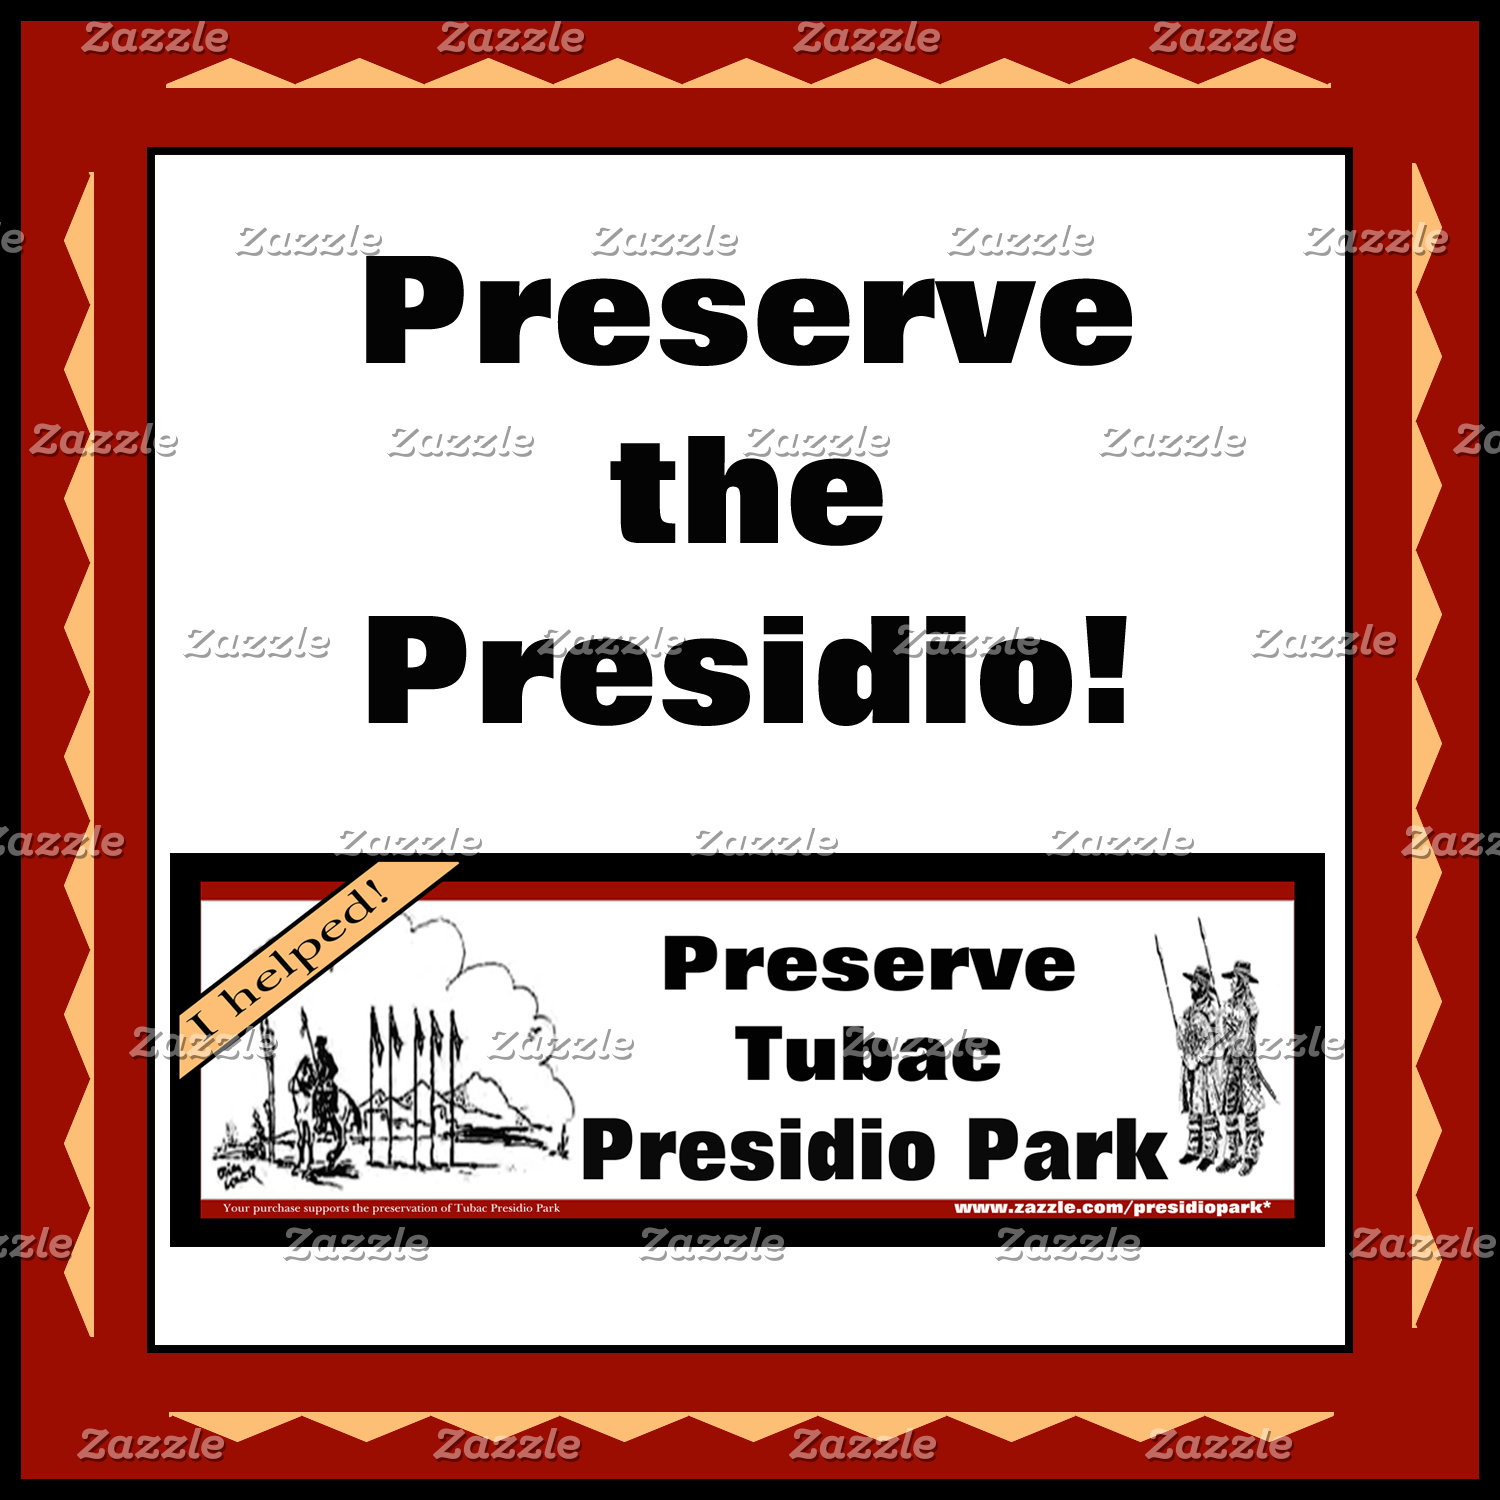 Preserve the Presidio!